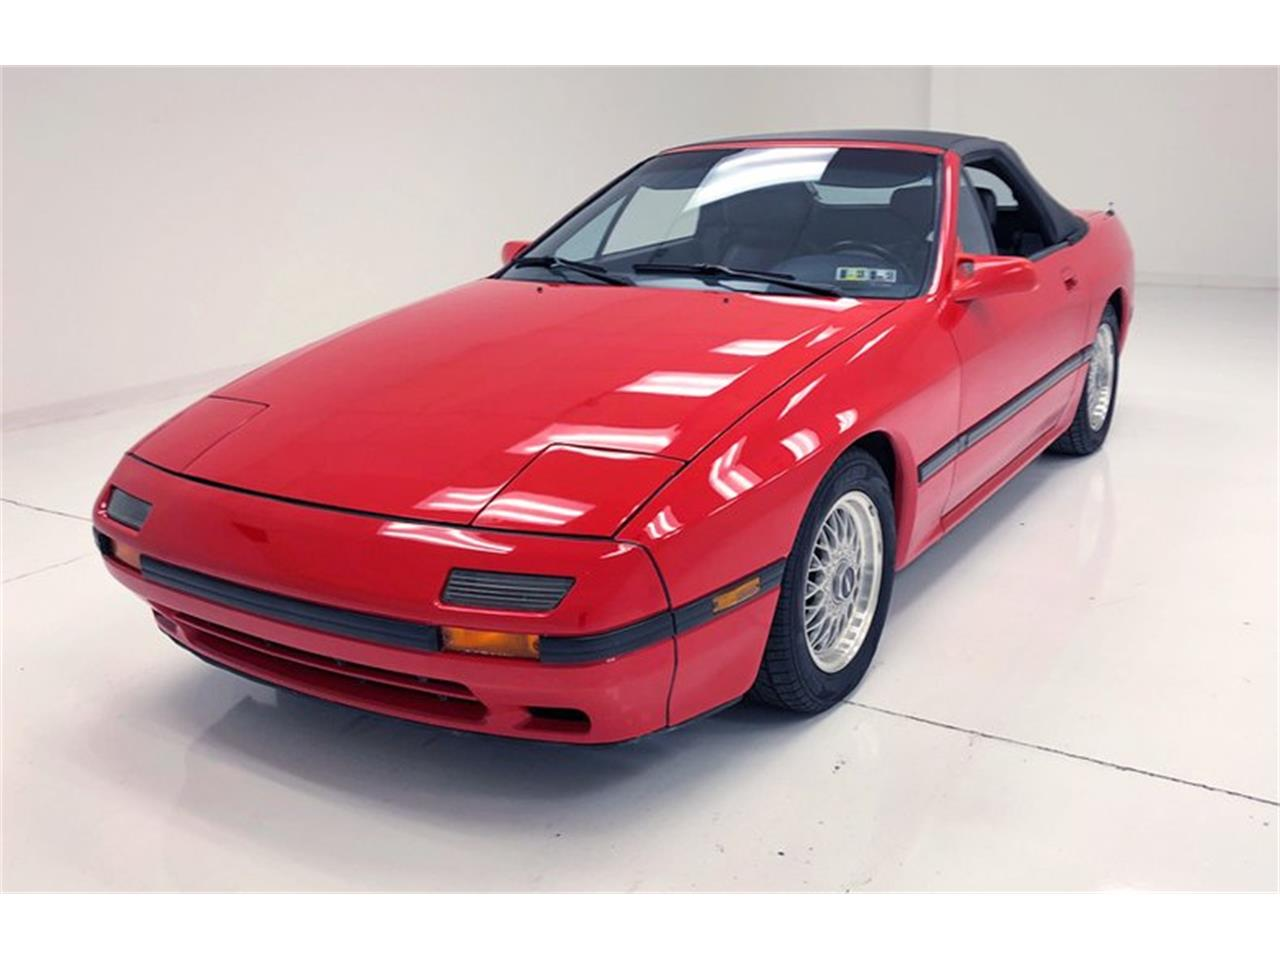 Large Picture of '88 Mazda RX-7 located in Pennsylvania - $9,400.00 Offered by Classic Auto Mall - OTRD